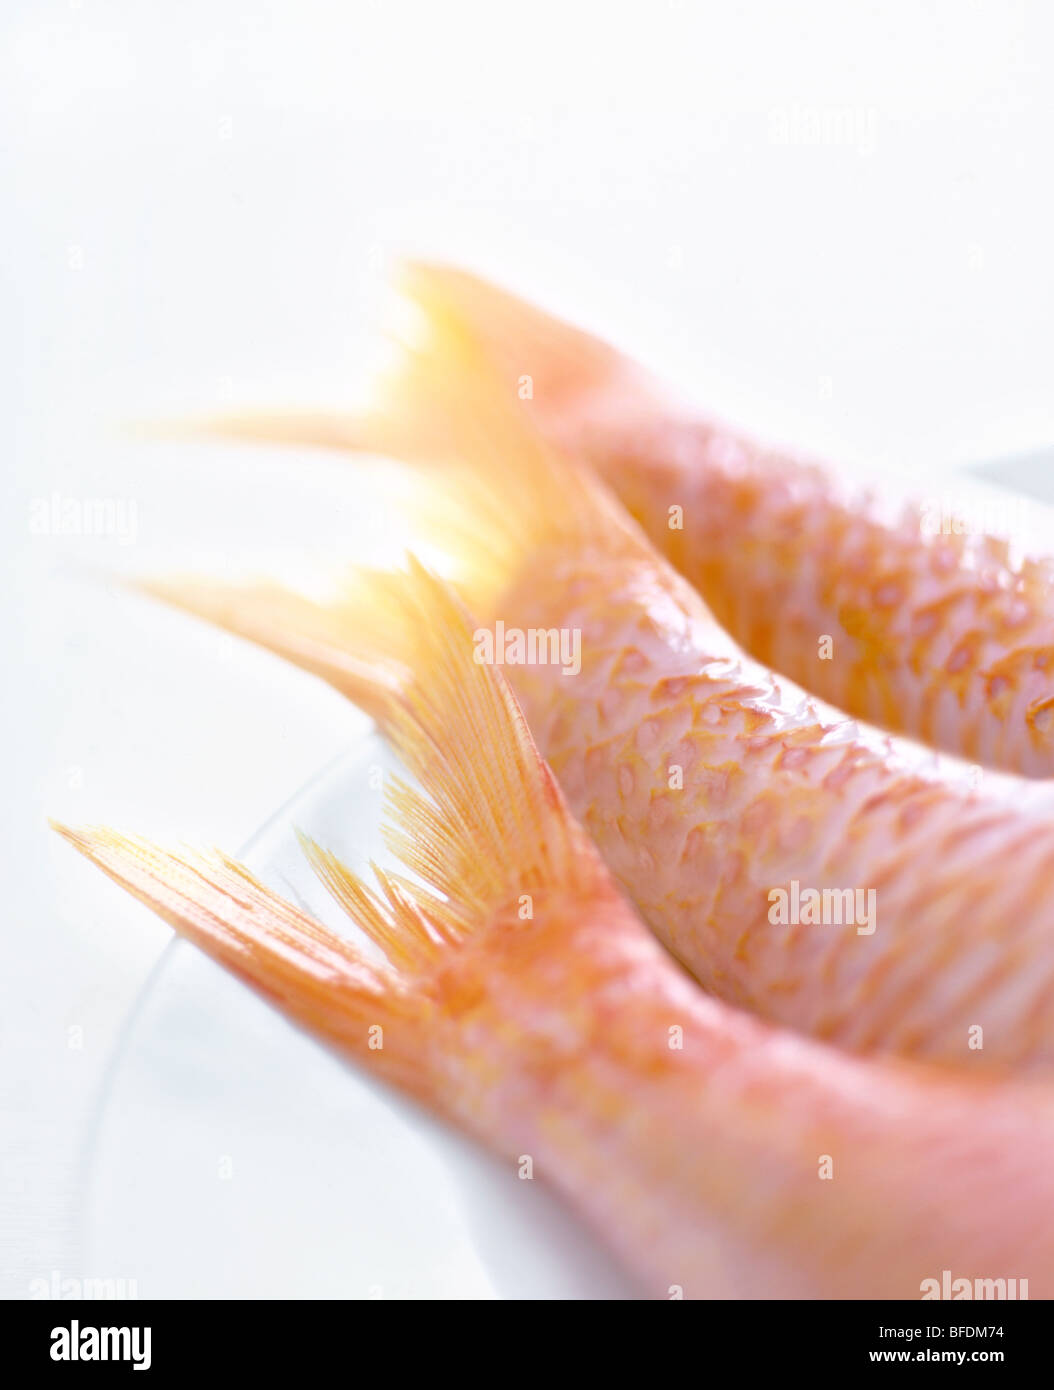 Fish tails - Stock Image